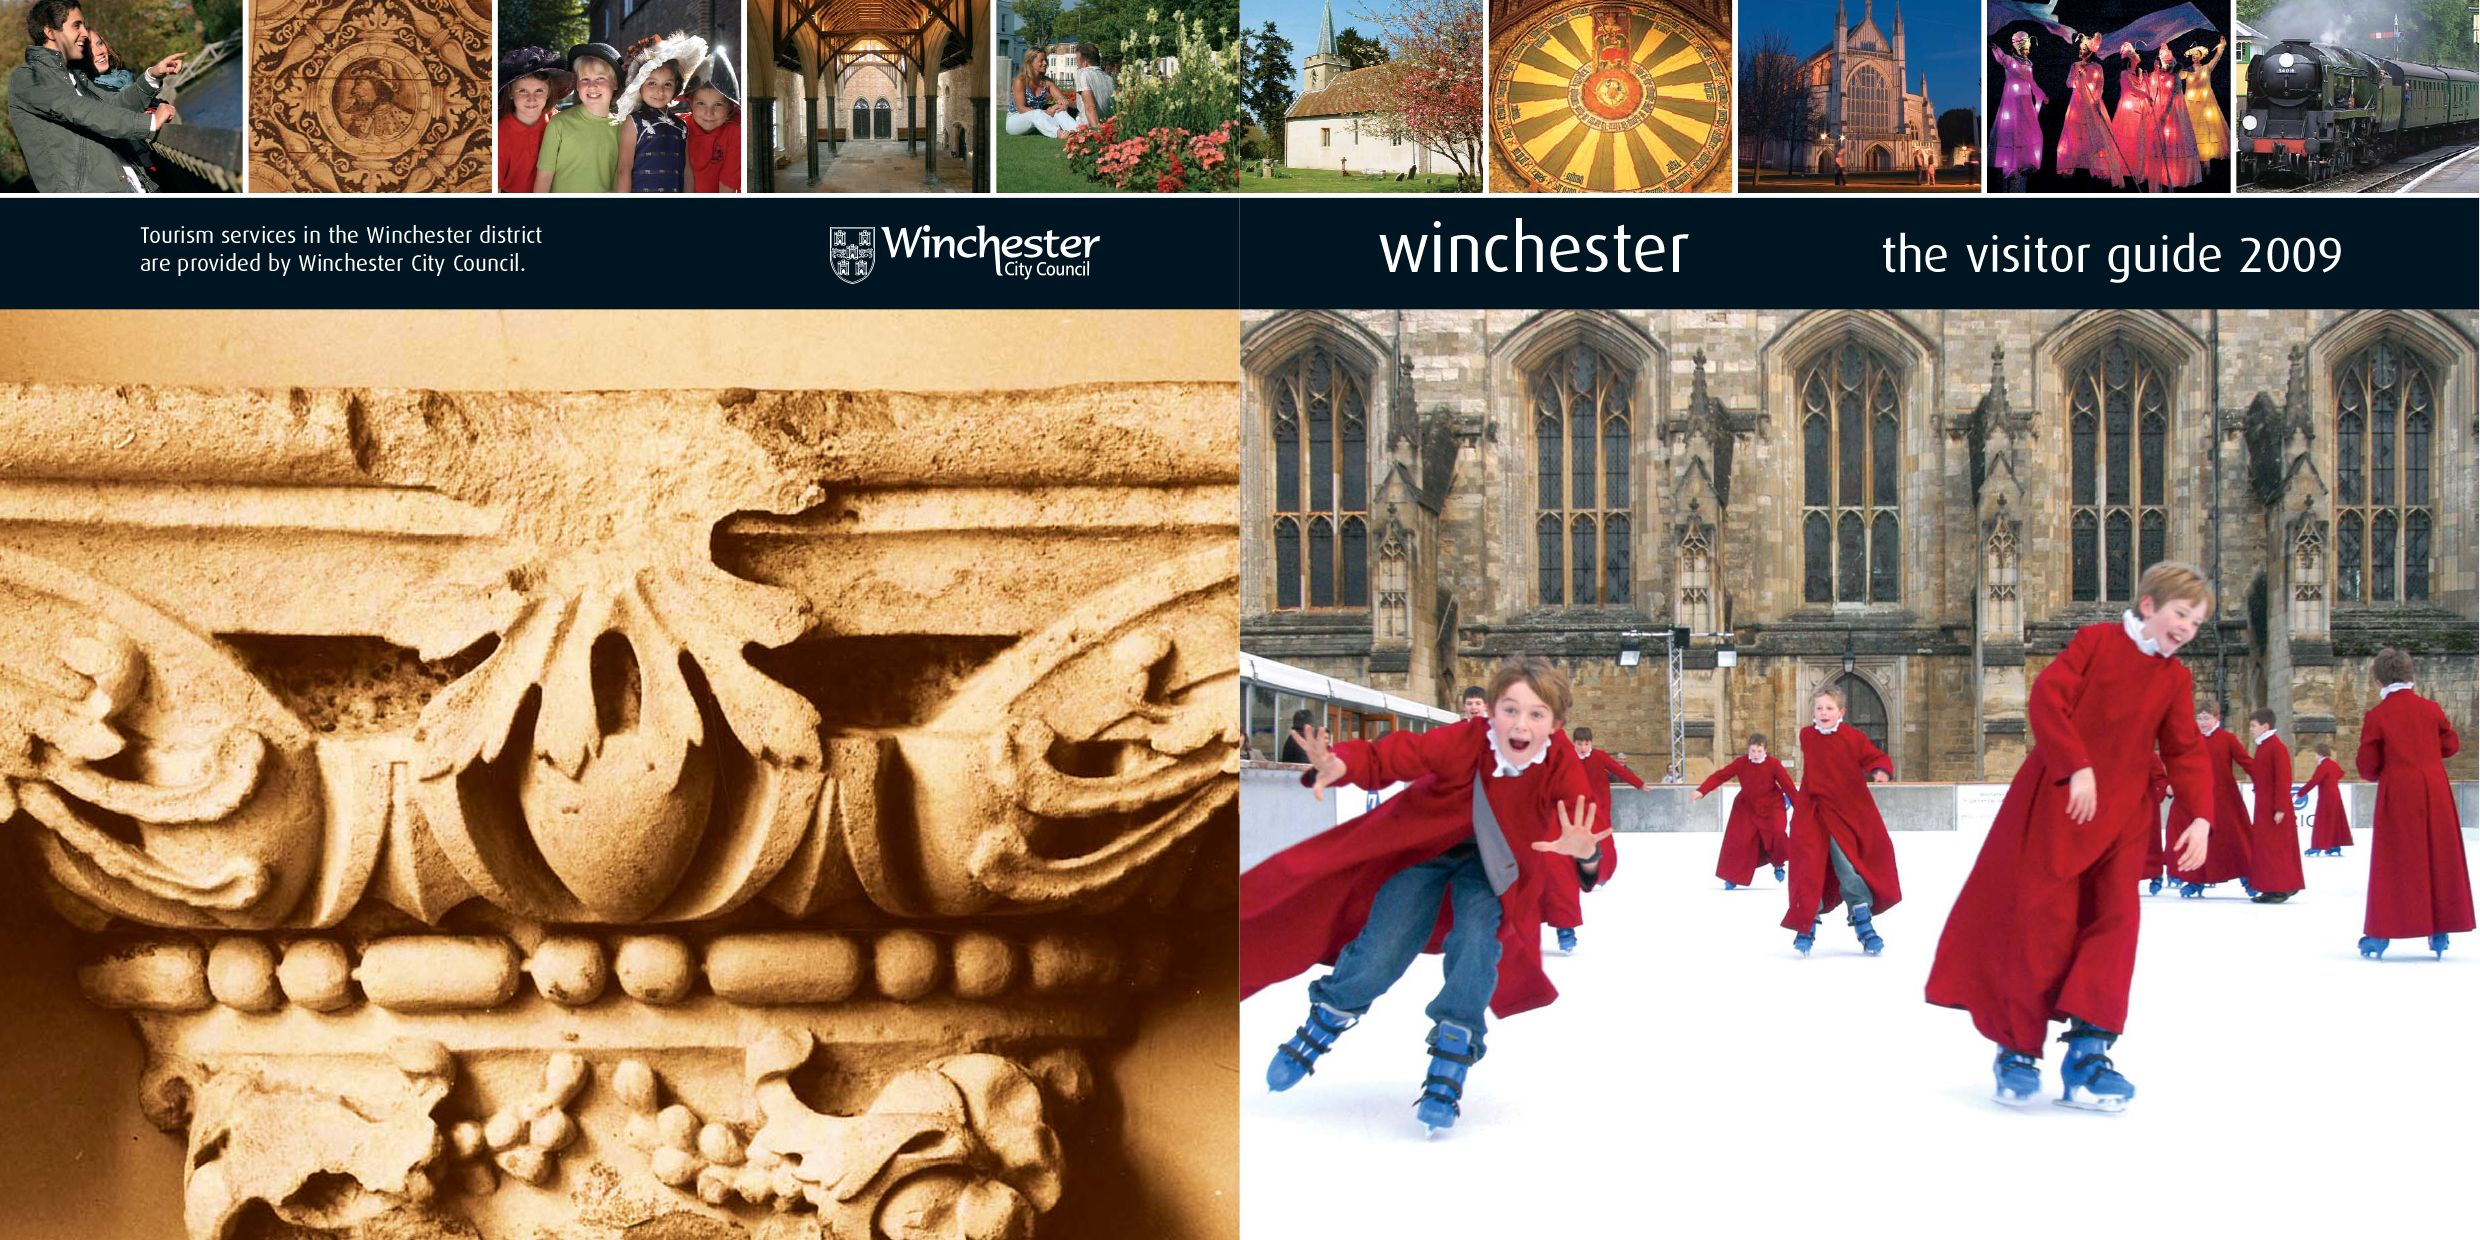 896f95c8063 Winchester Visitor Guide 2009 by Winchester City Council - issuu